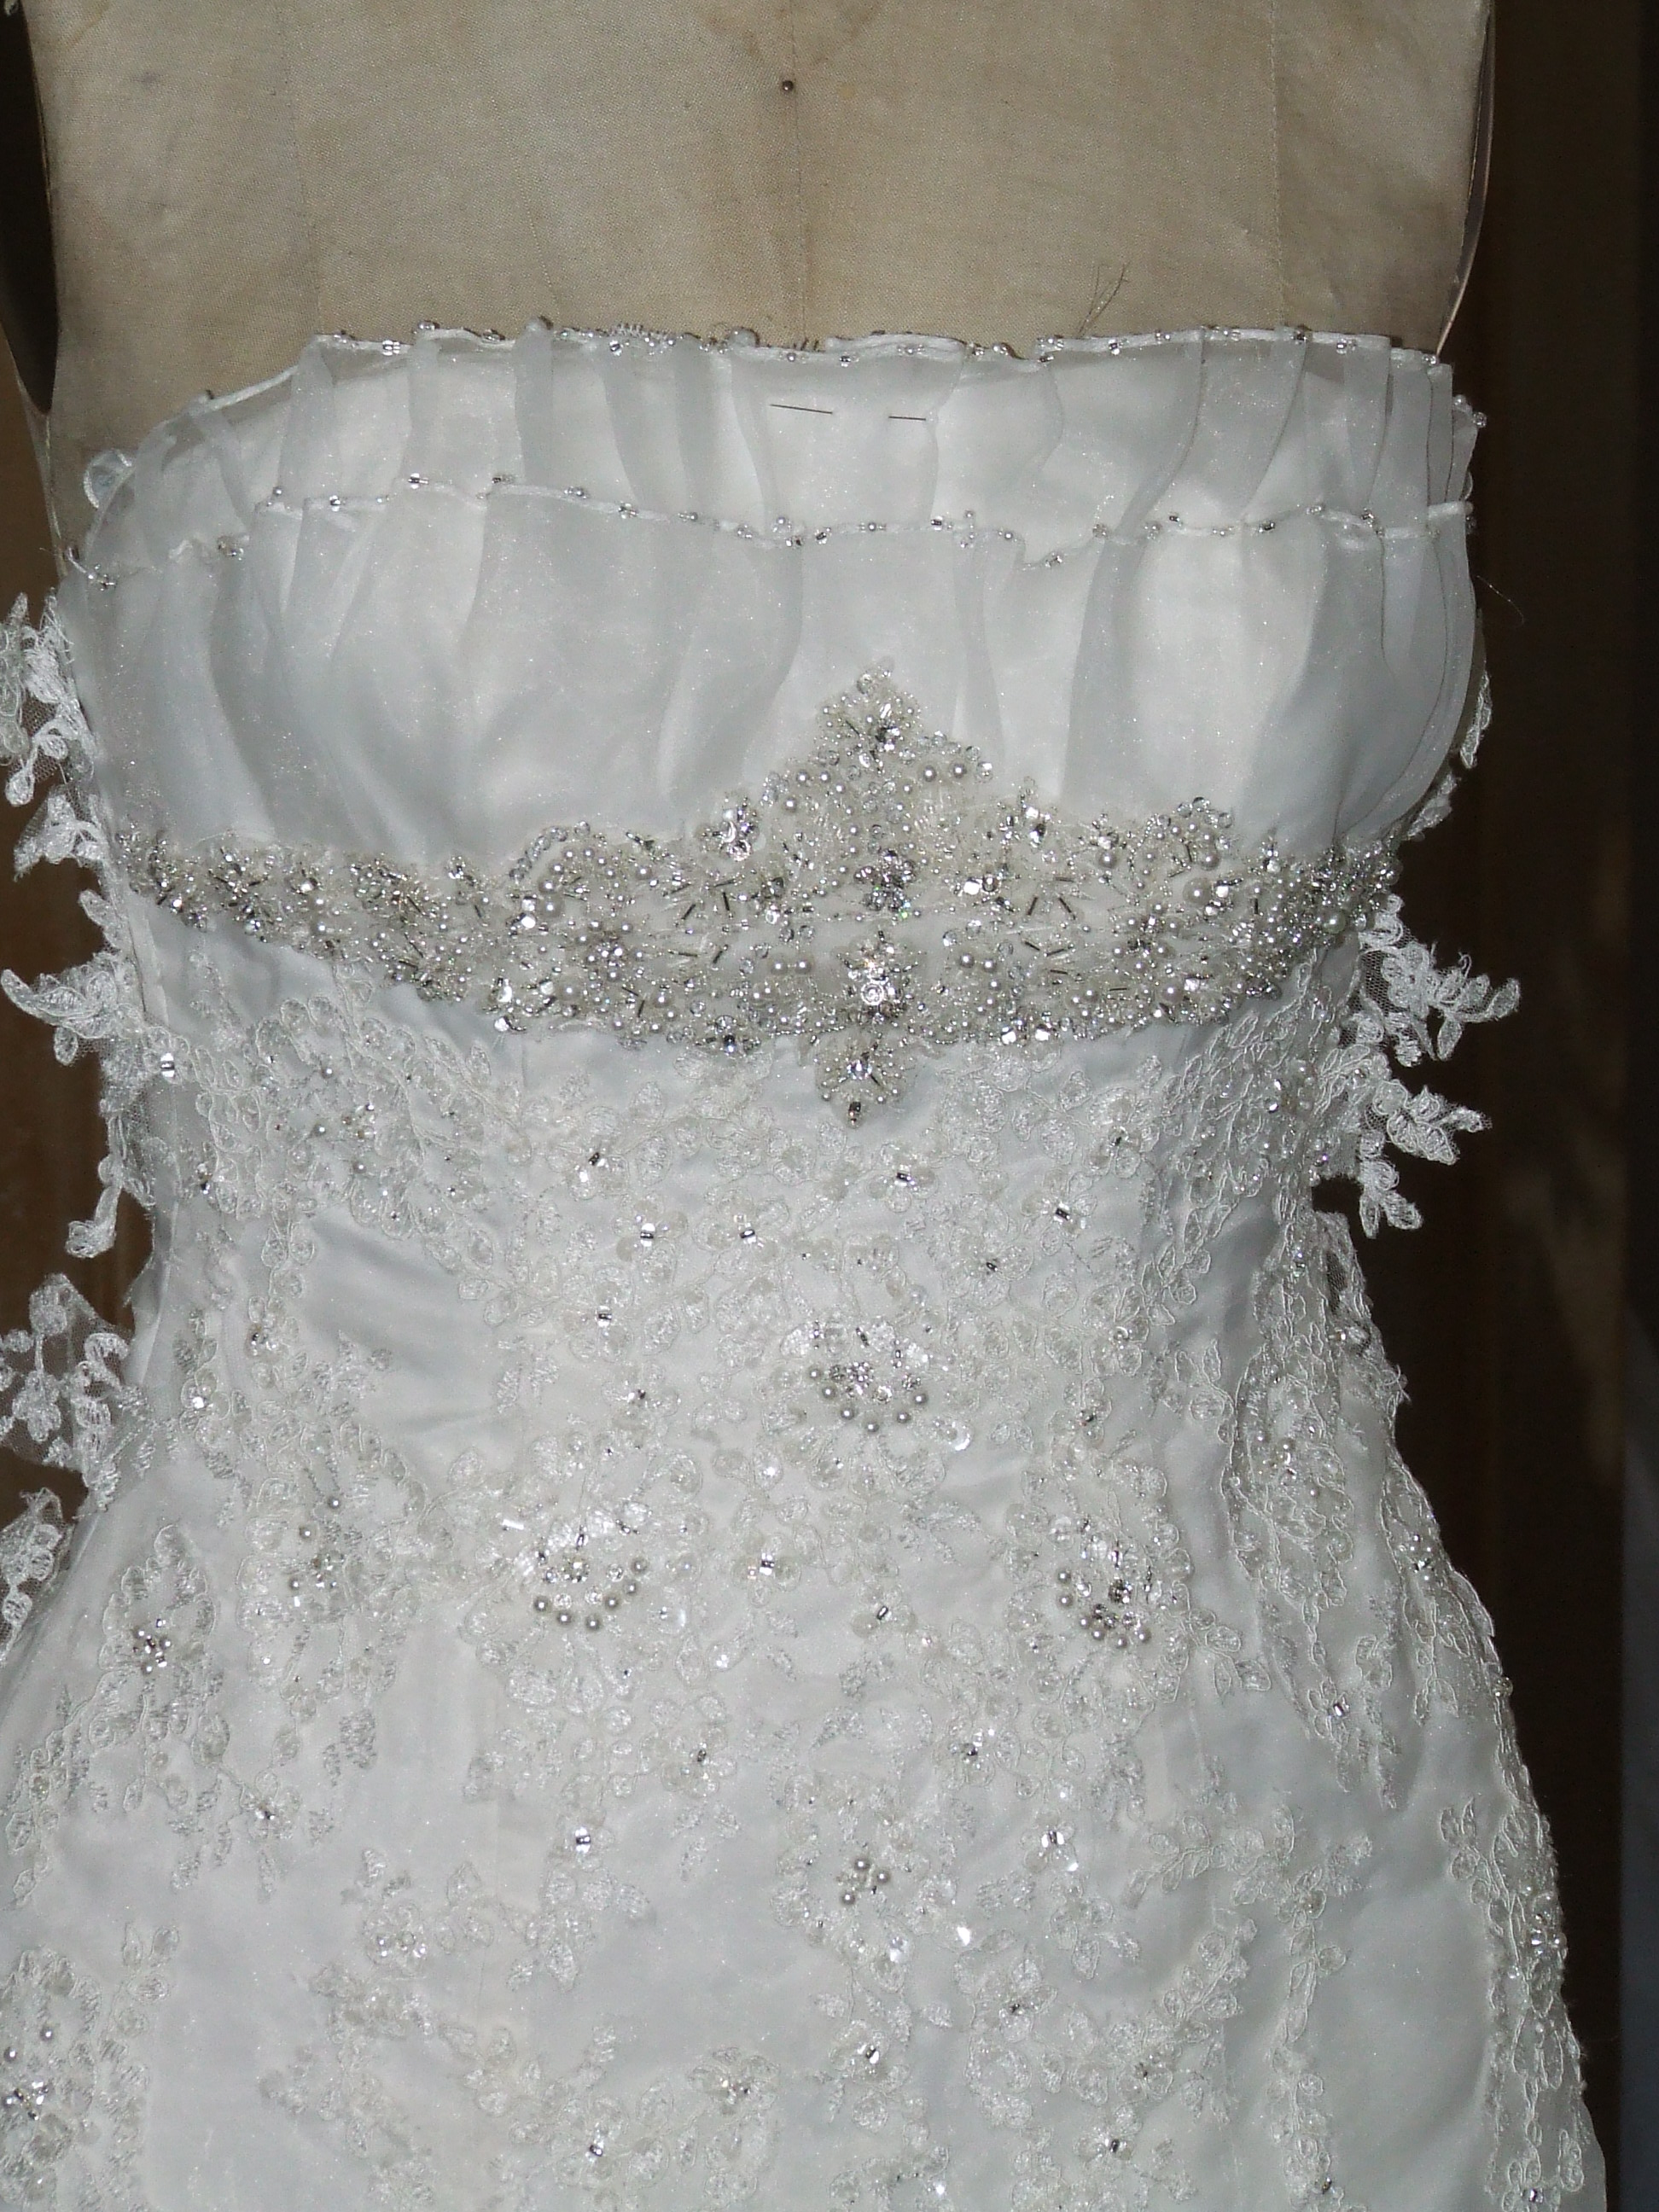 Lace wedding gown alterations 002 barbara stone designs lace wedding gown alterations 002 solutioingenieria Image collections